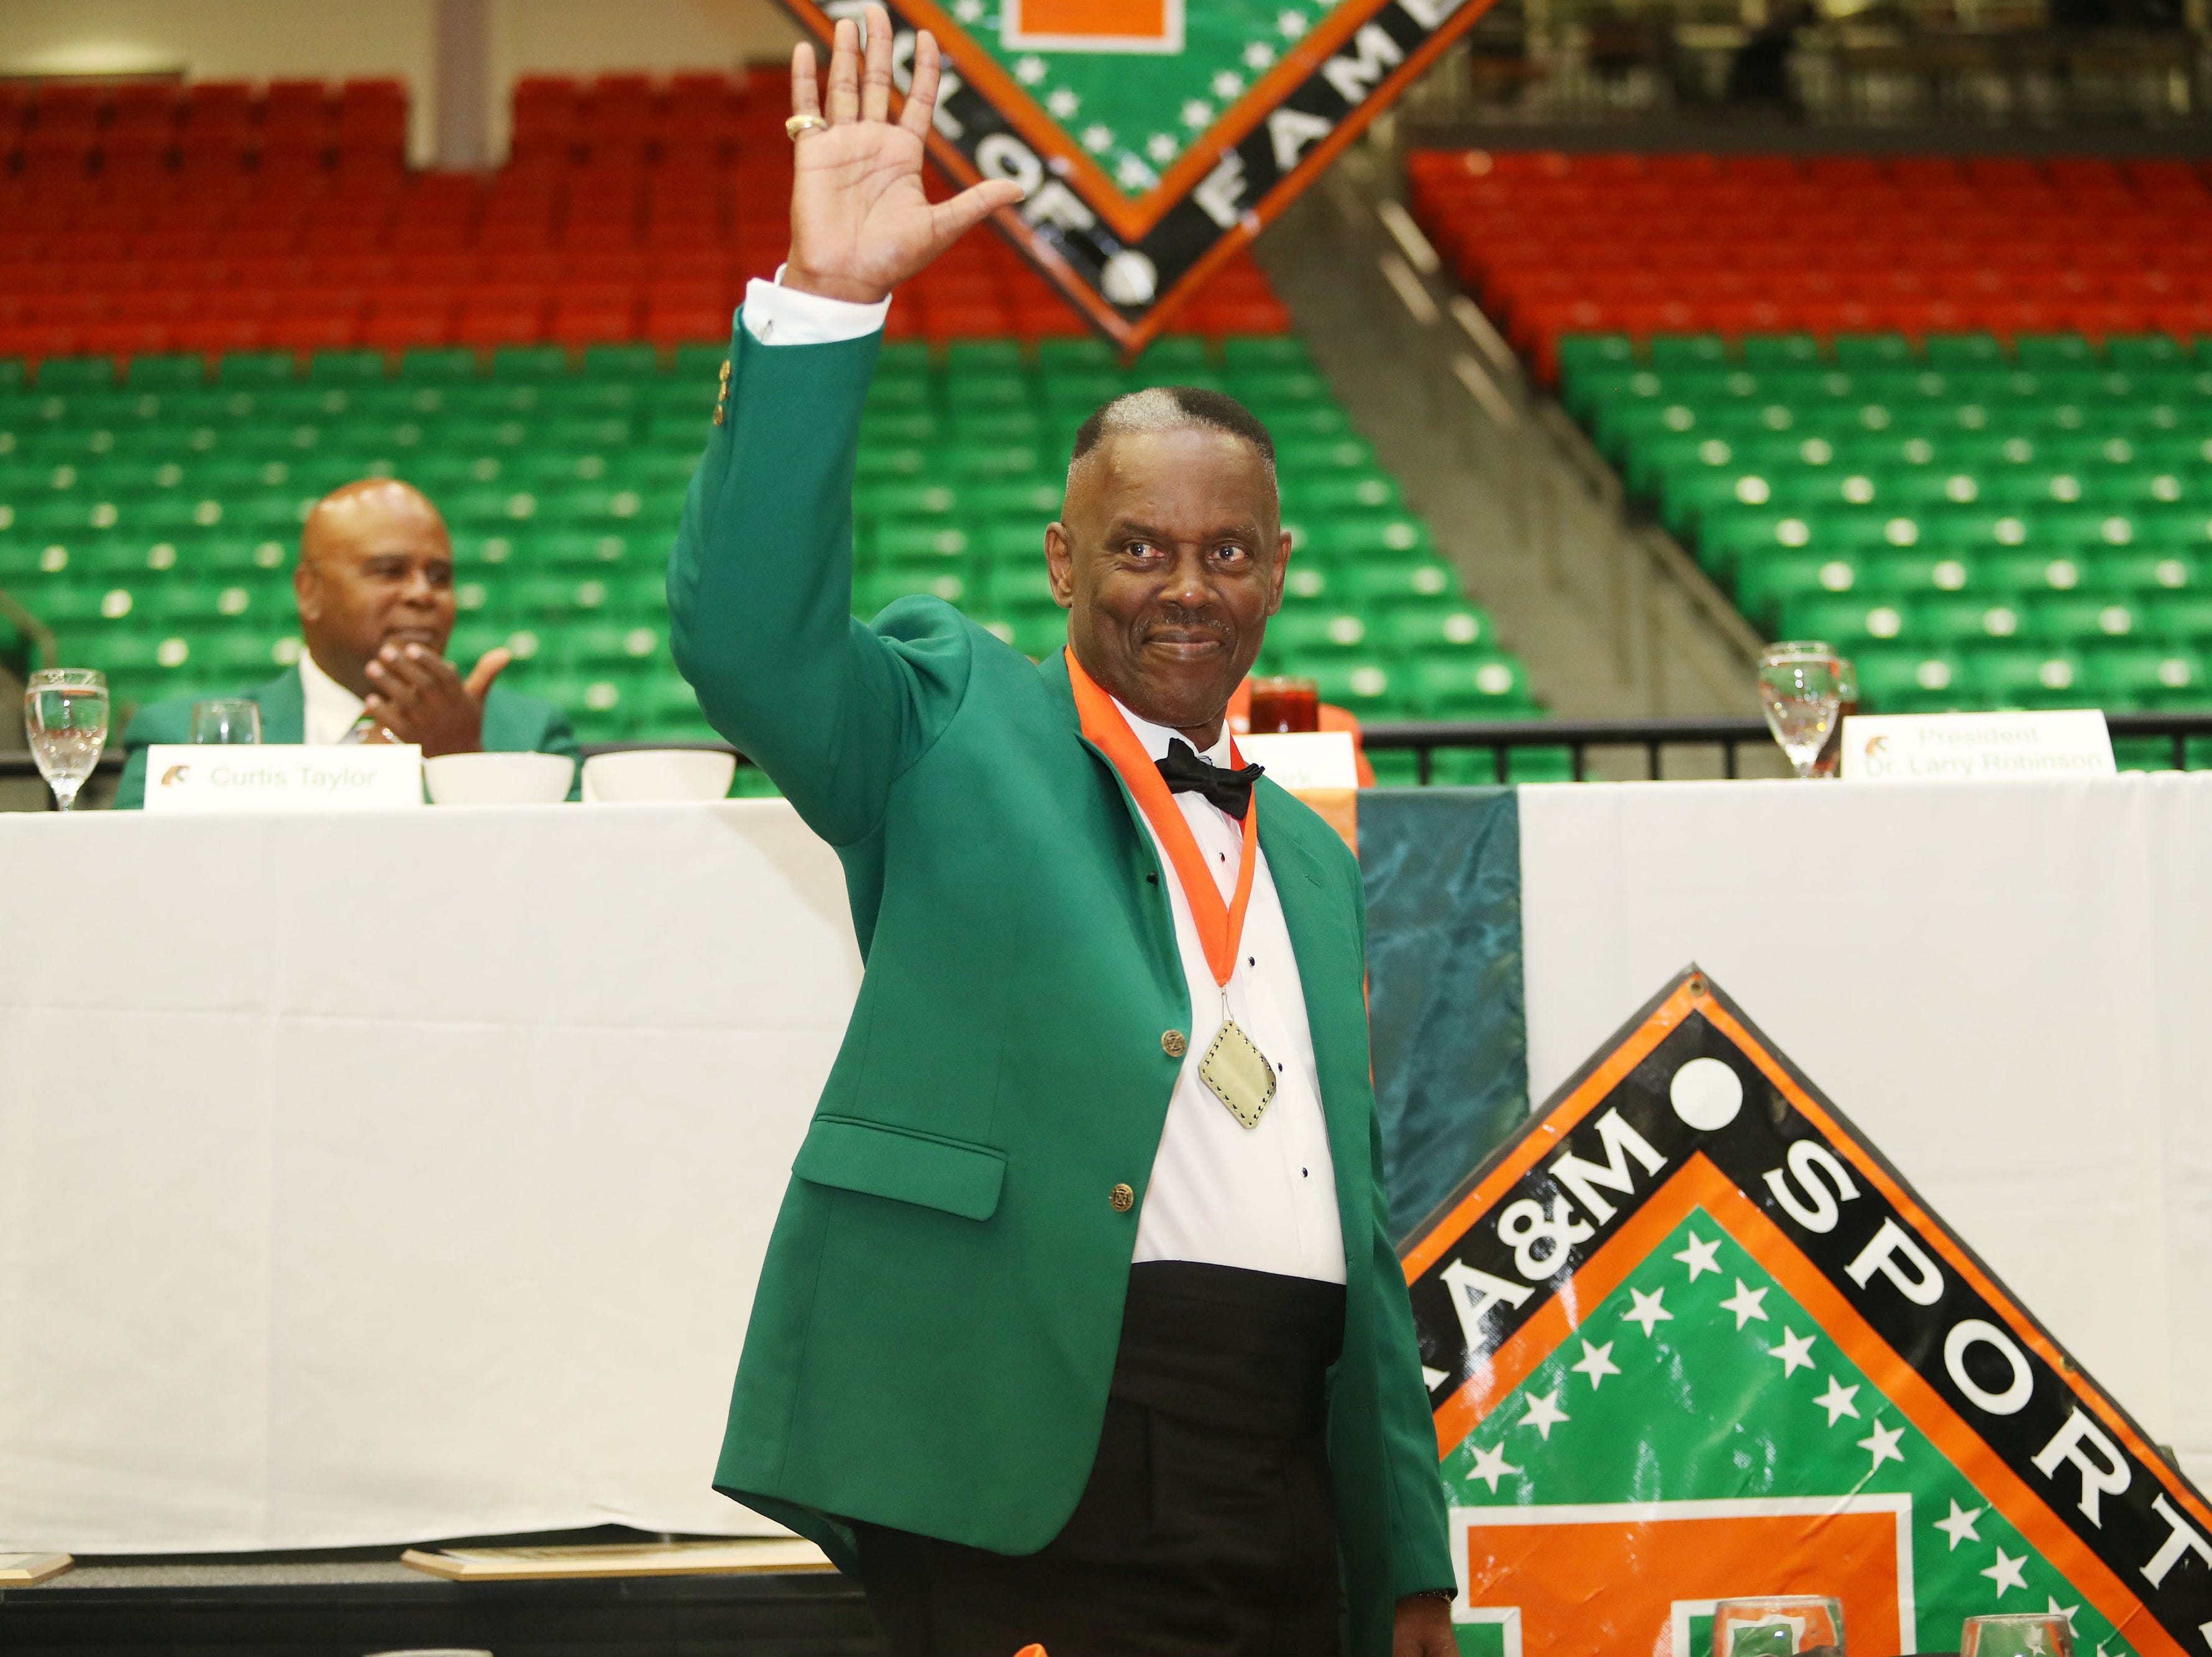 Former FAMU quarterback Stephen Scruggs waves to the crowd. Scruggs is one of the newest members of the Hall of Fame.